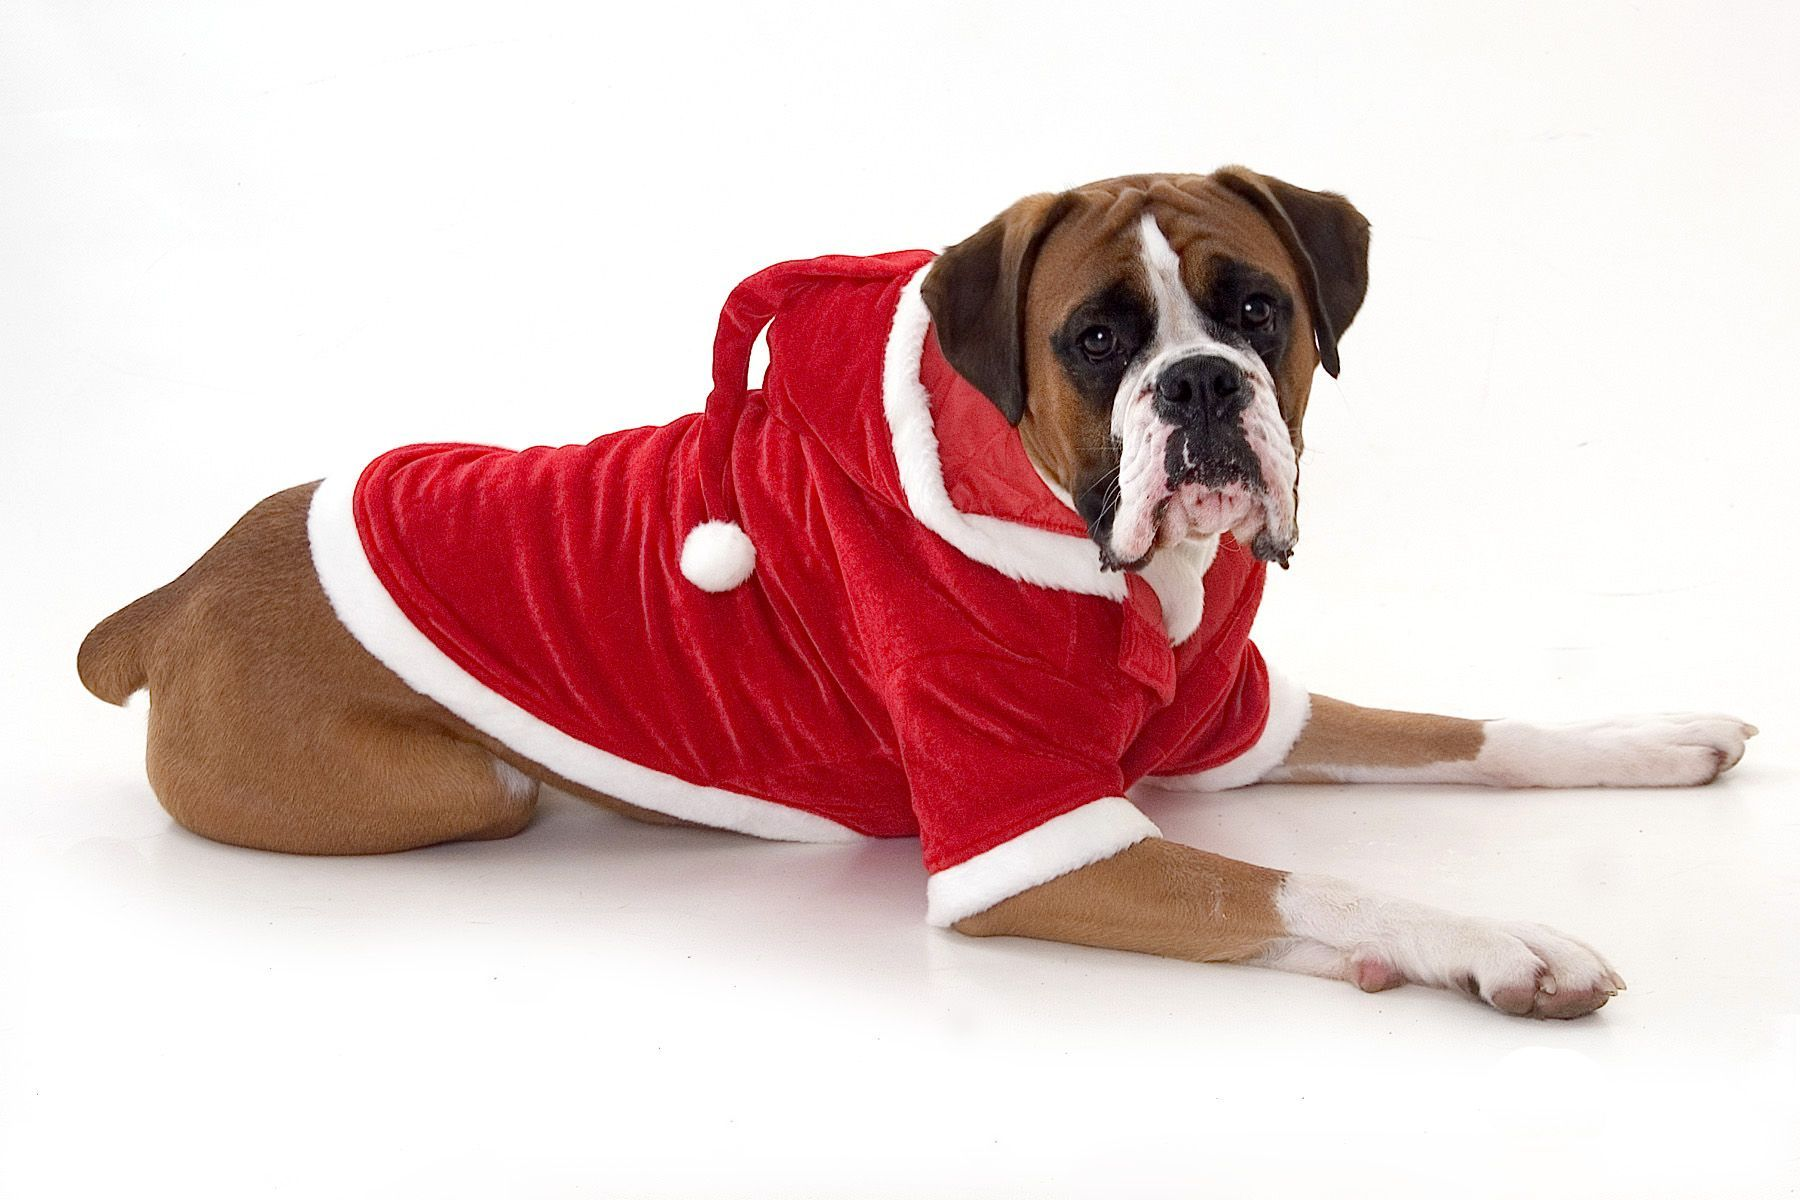 Dog In Santa Outfit photo - 2